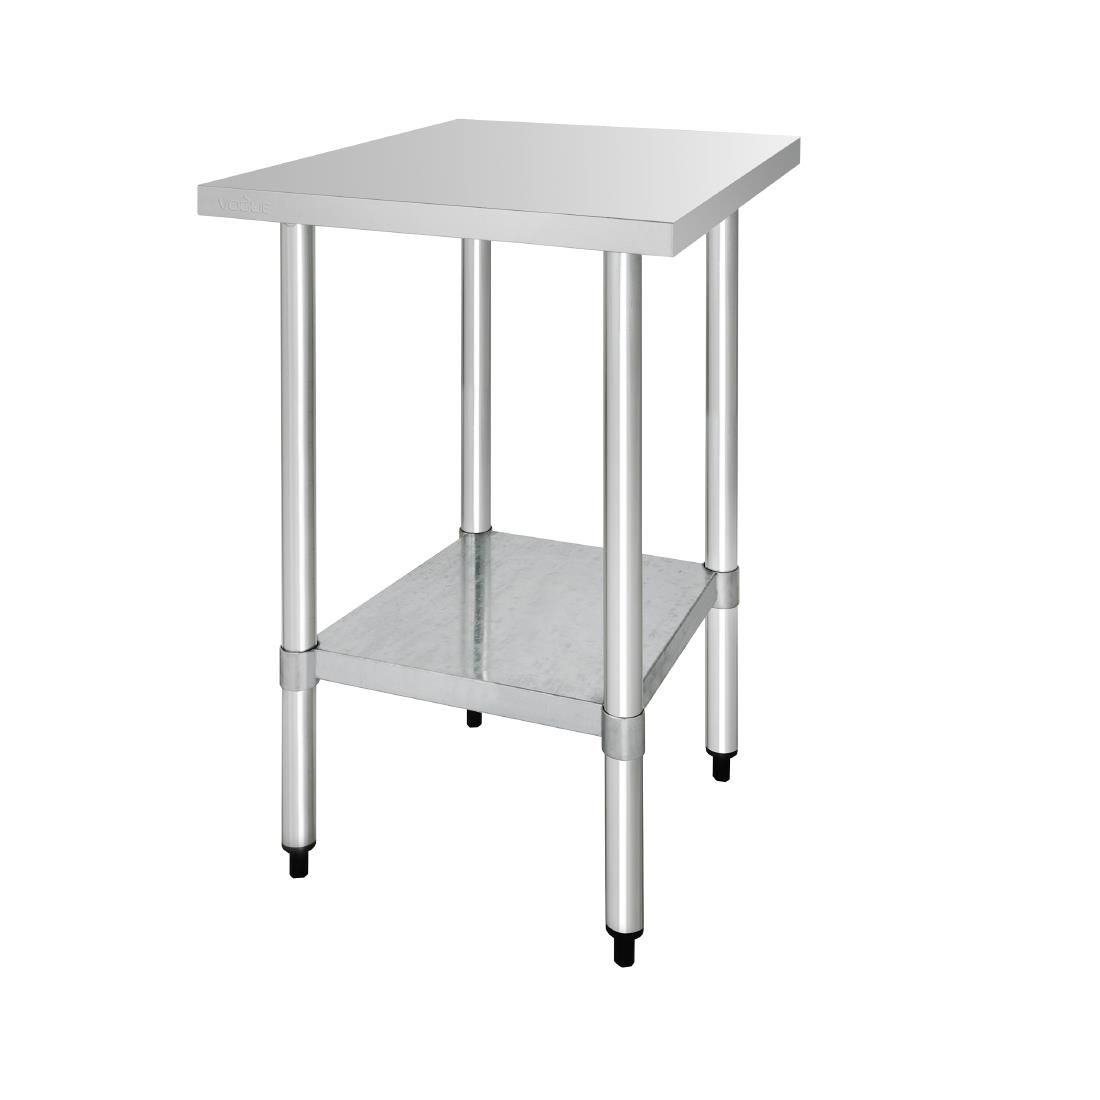 Vogue Stainless Steel Table Without Upstand 700 D Mm Steel Table Stainless Steel Table Stainless Steel Prep Table